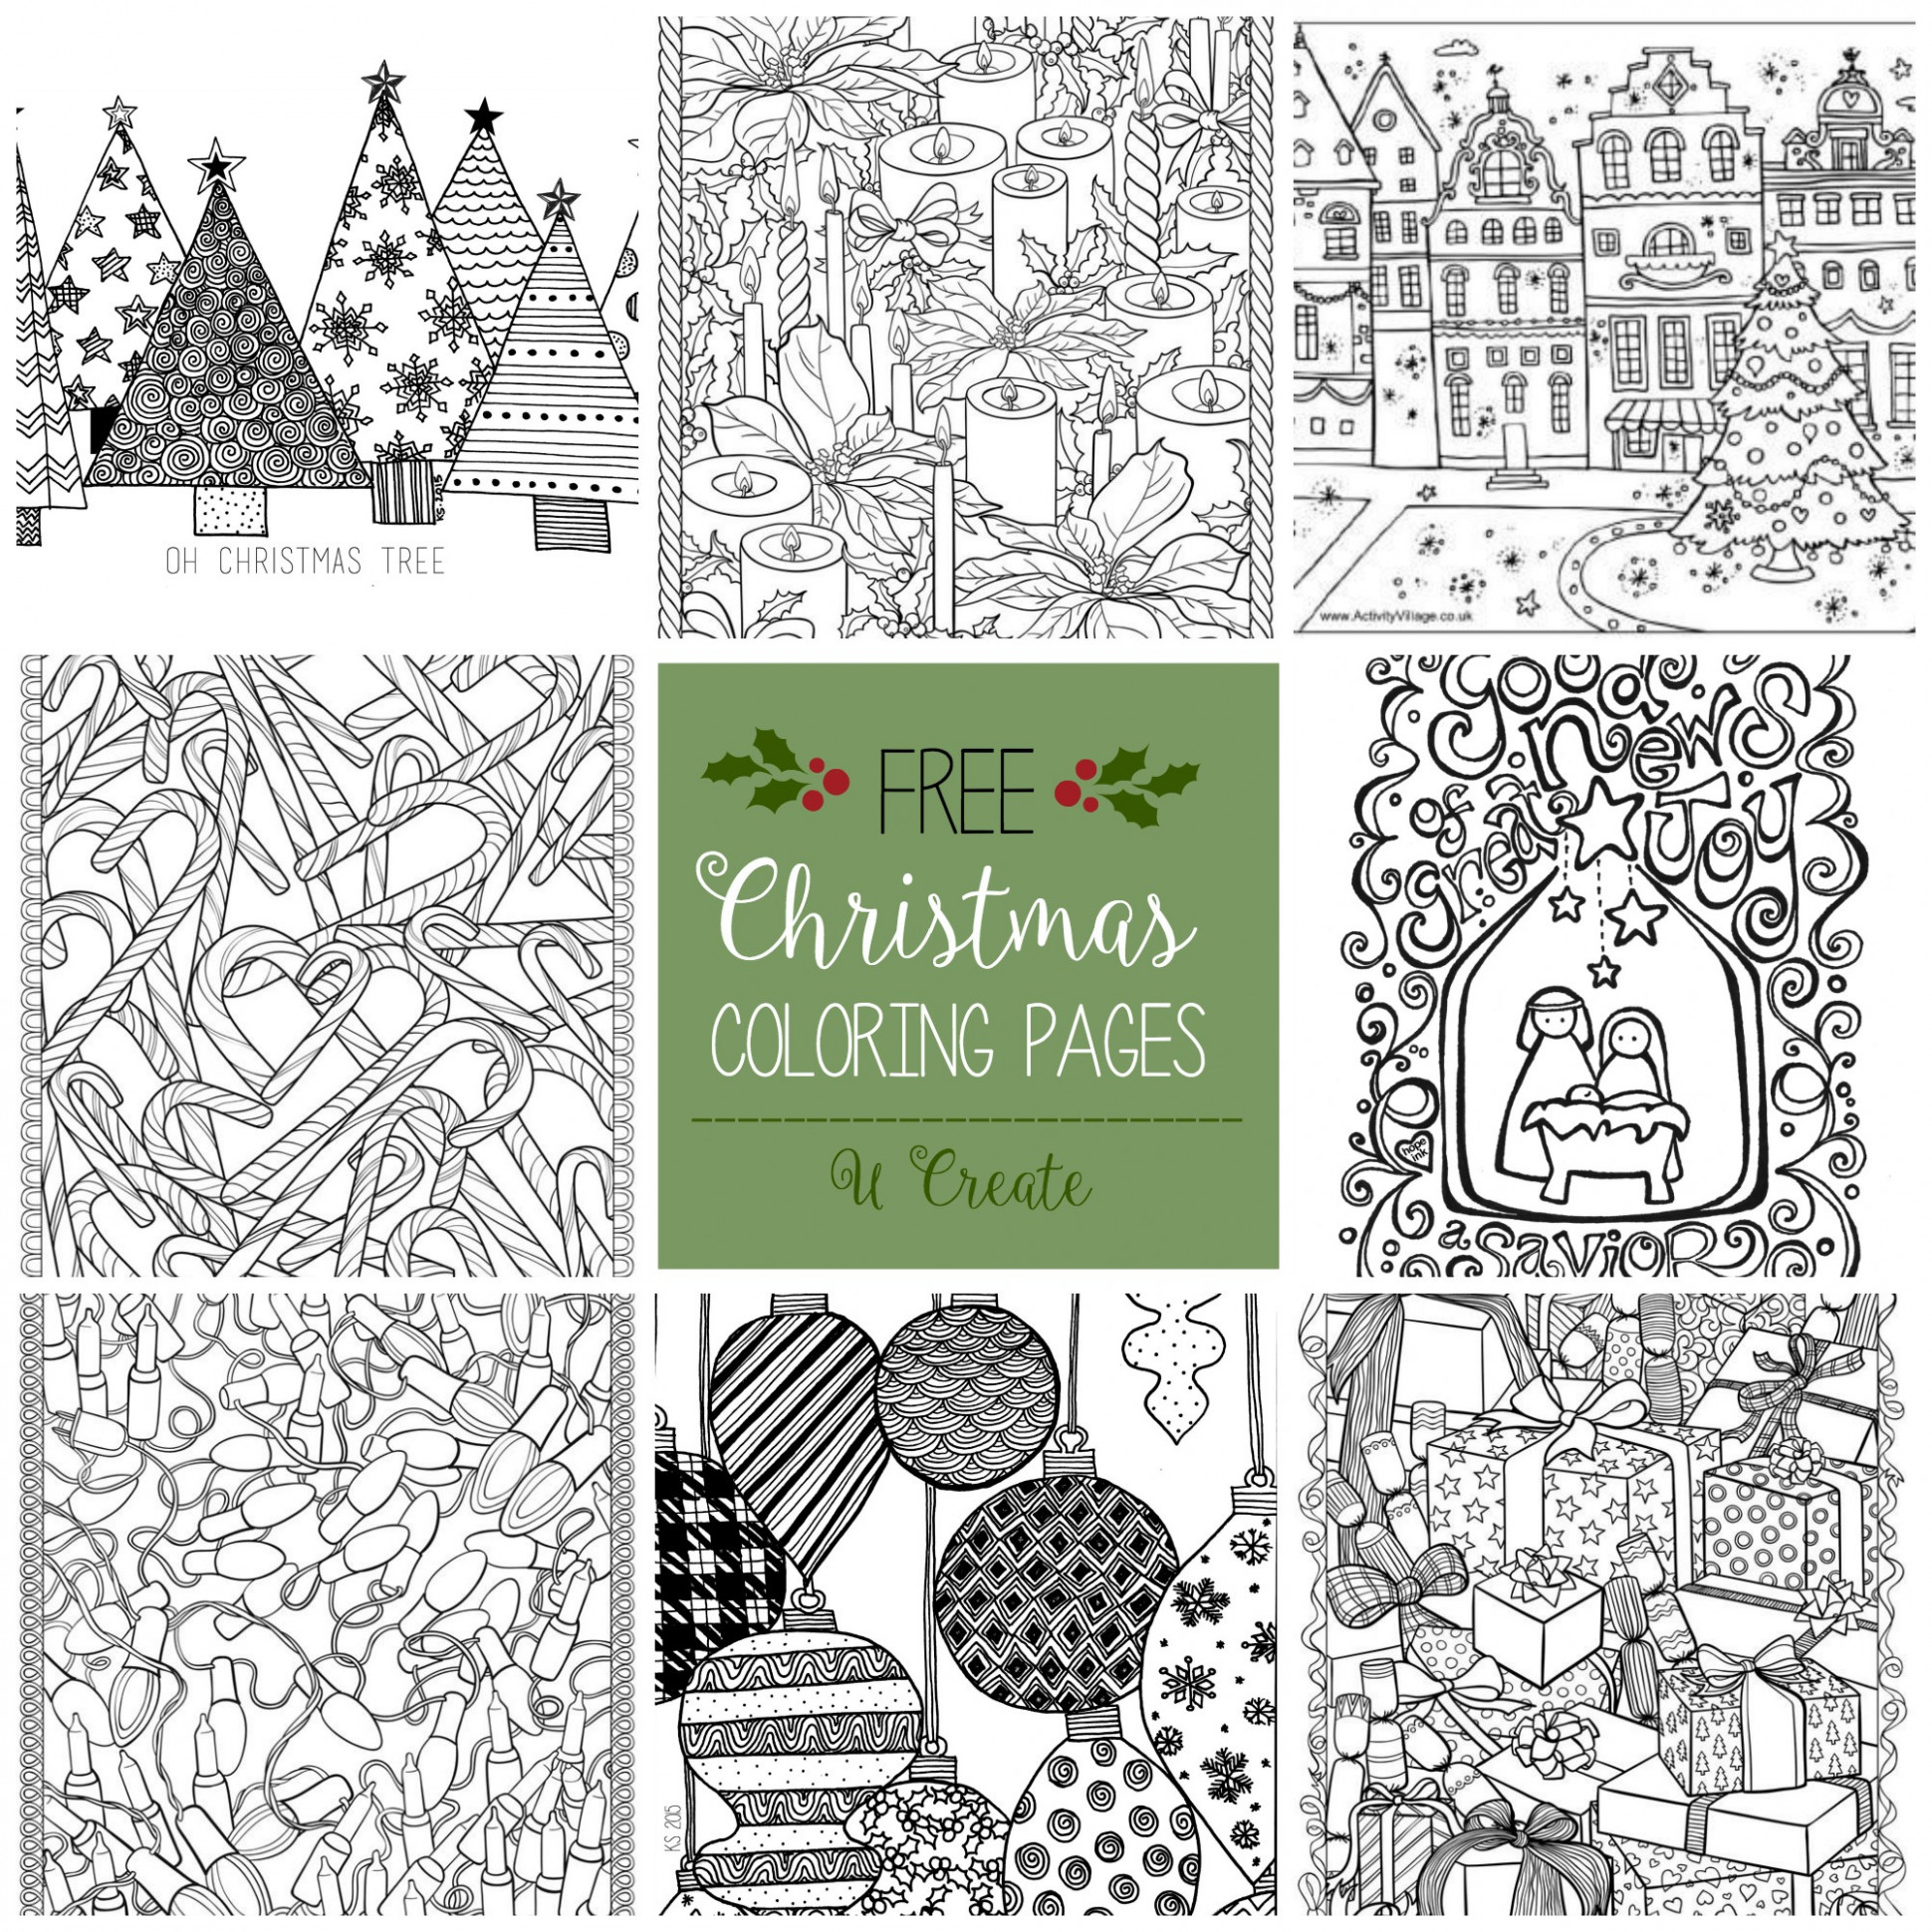 Free Christmas Adult Coloring Pages – U Create – Christmas Coloring Pages Printable For Adults